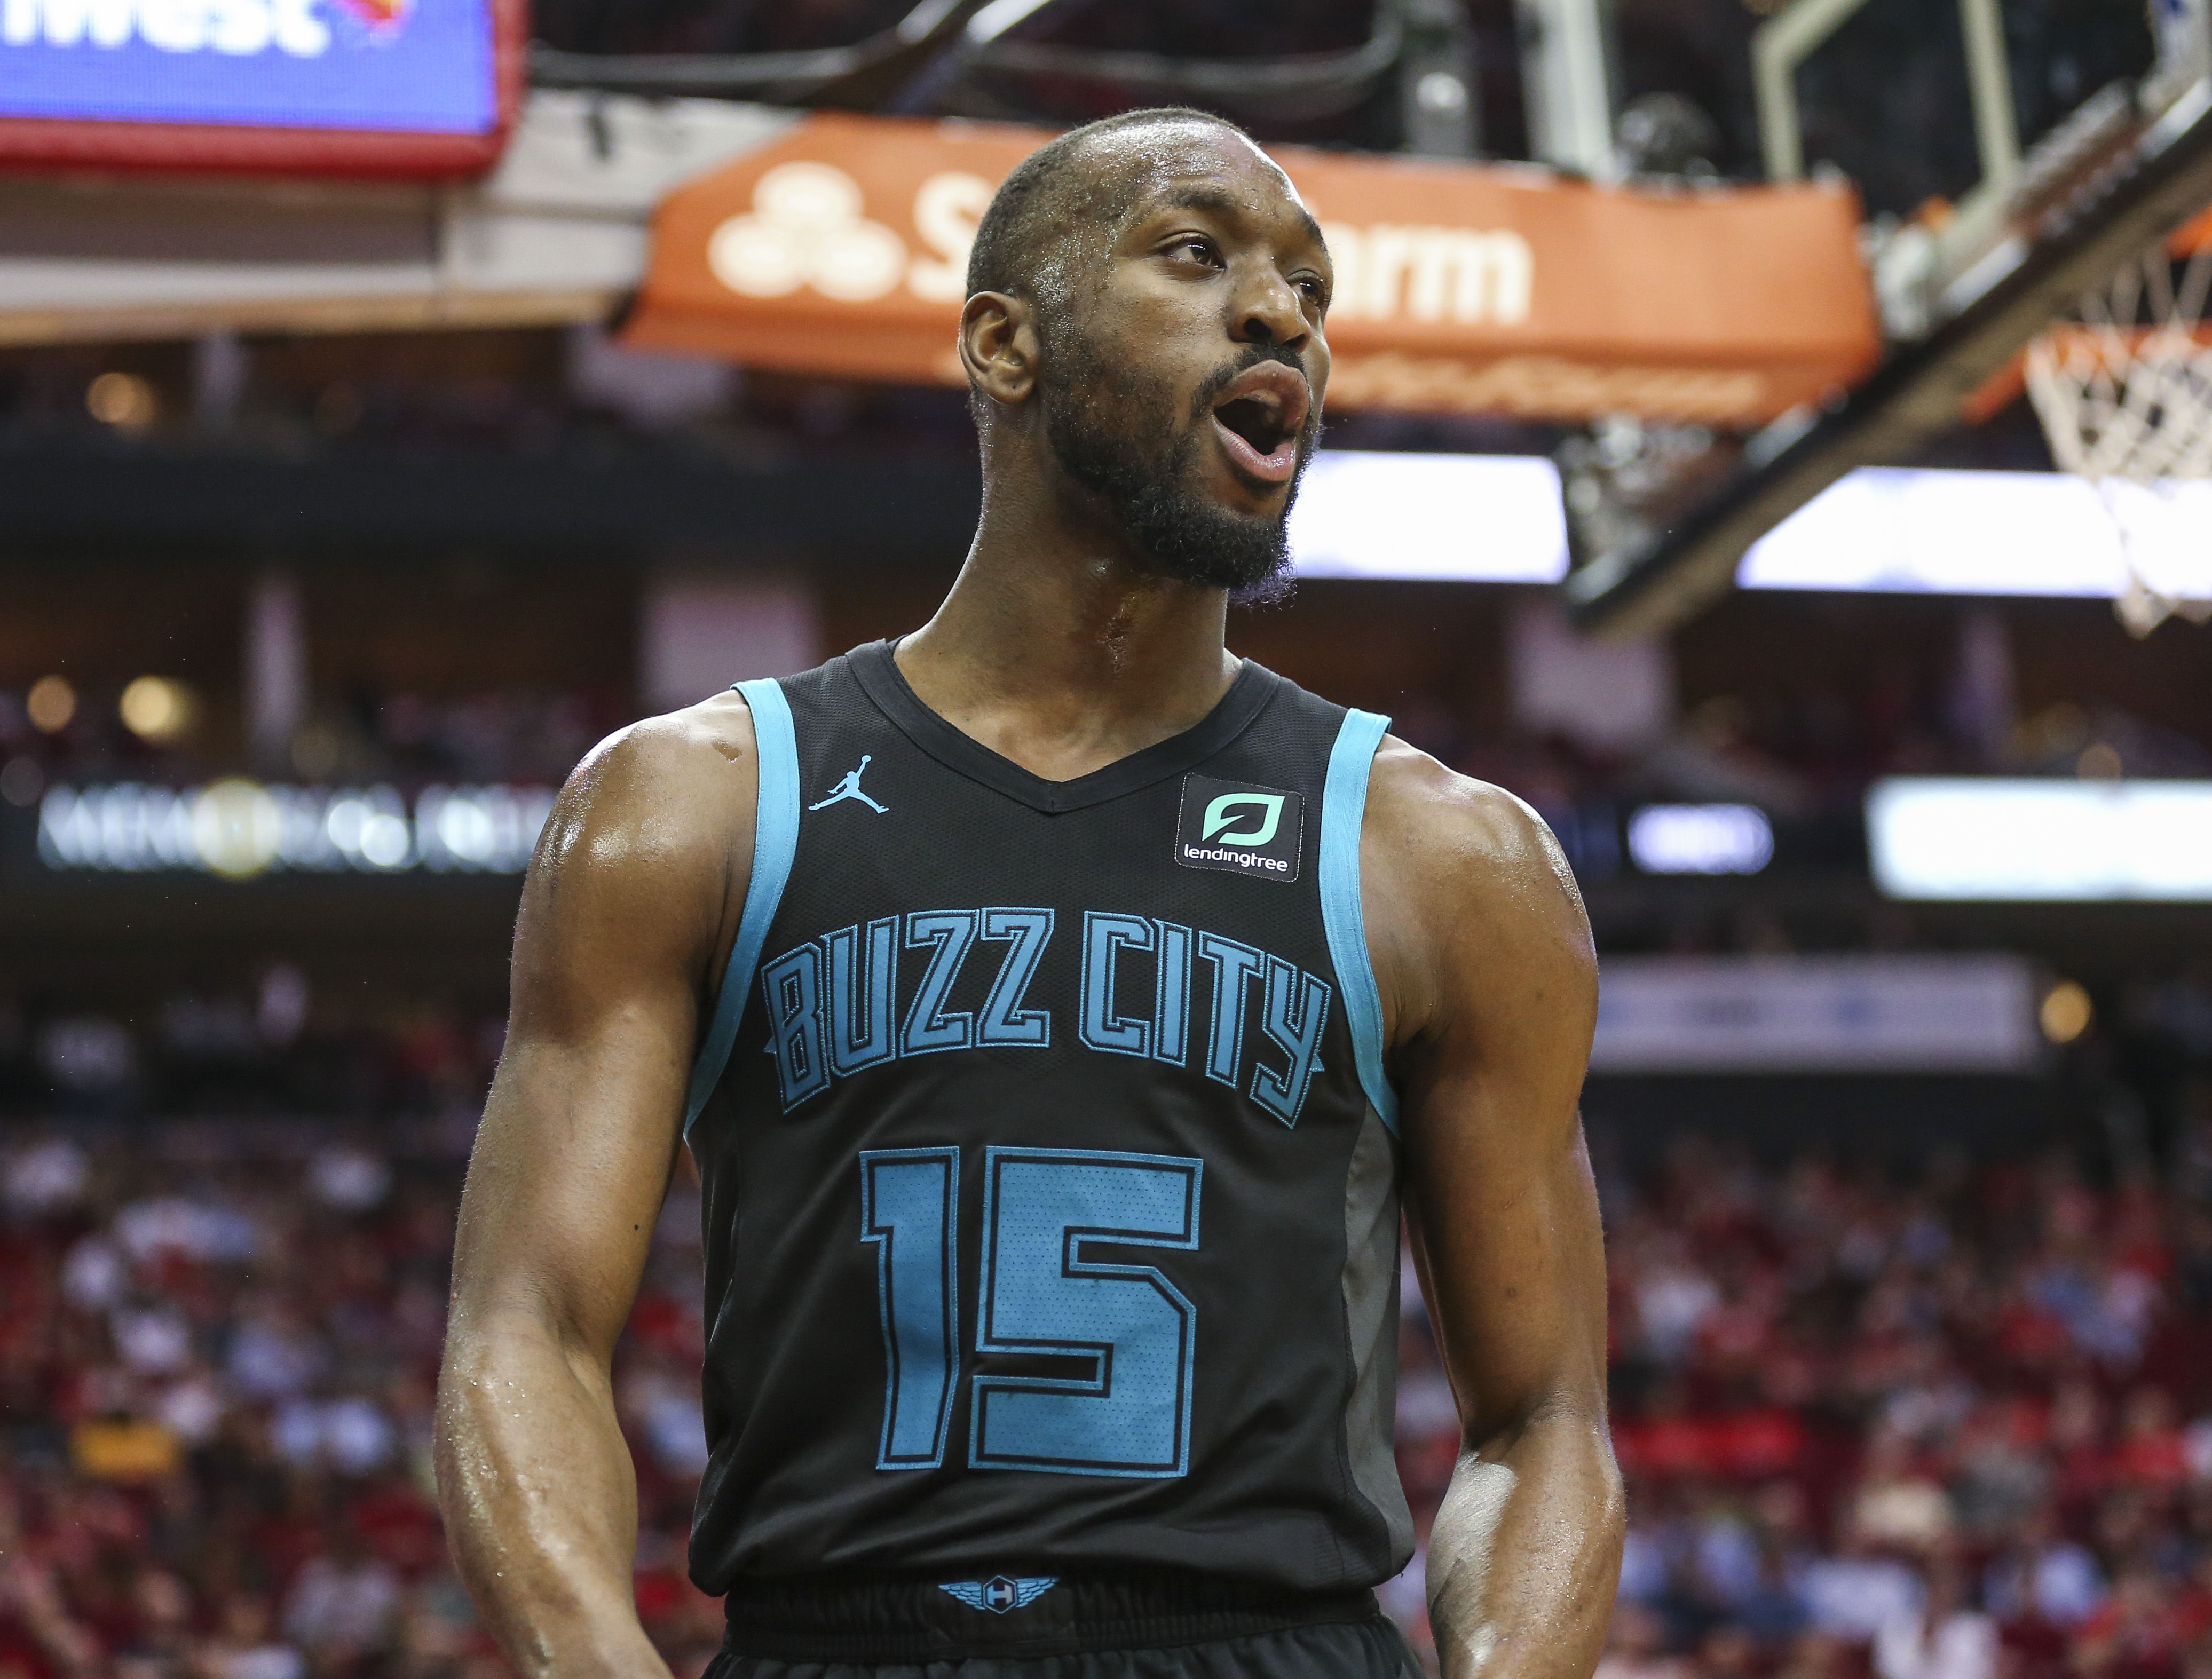 Kemba Walker free agent rumors: What kind of legacy does the Hornets' guard want?